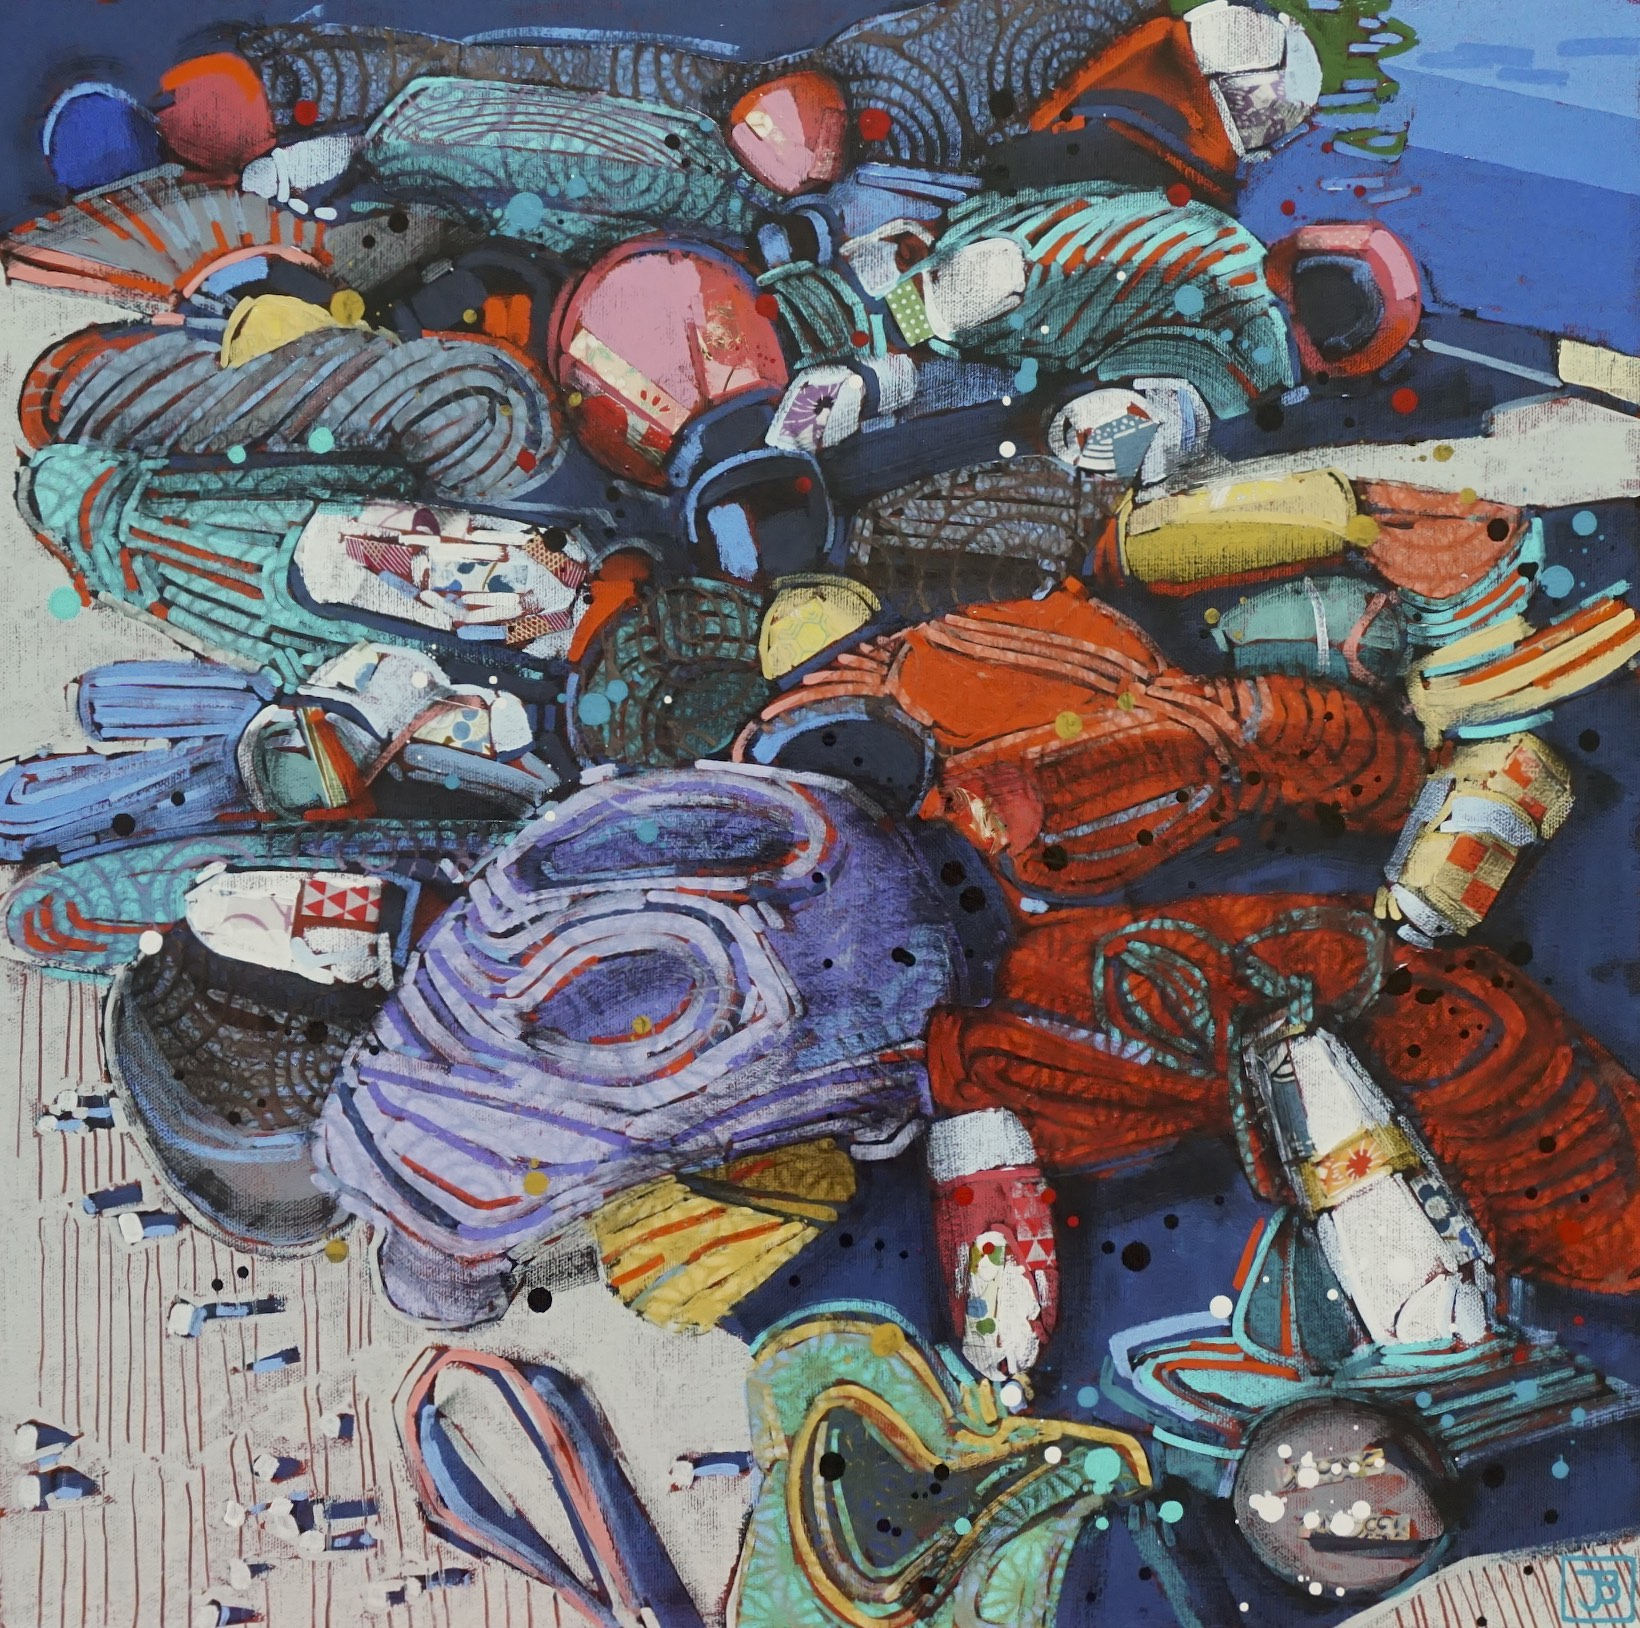 buoys and colorful rope, peggy's cove, NS,  mixed media on canvas, 20x20(in), $700 + GST,  2018